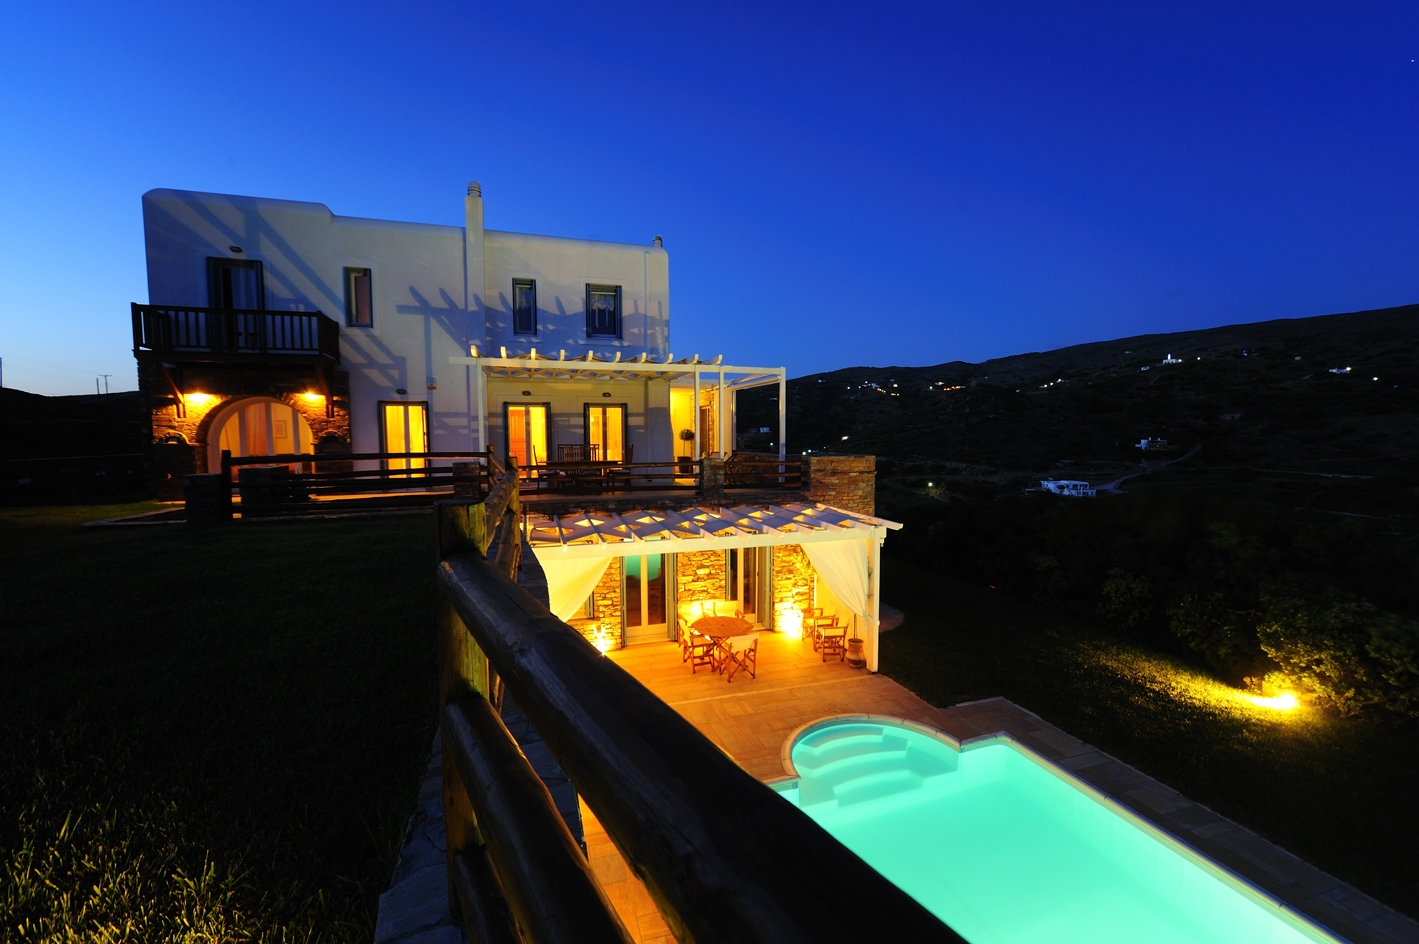 Villa Phivi with the evening lights on